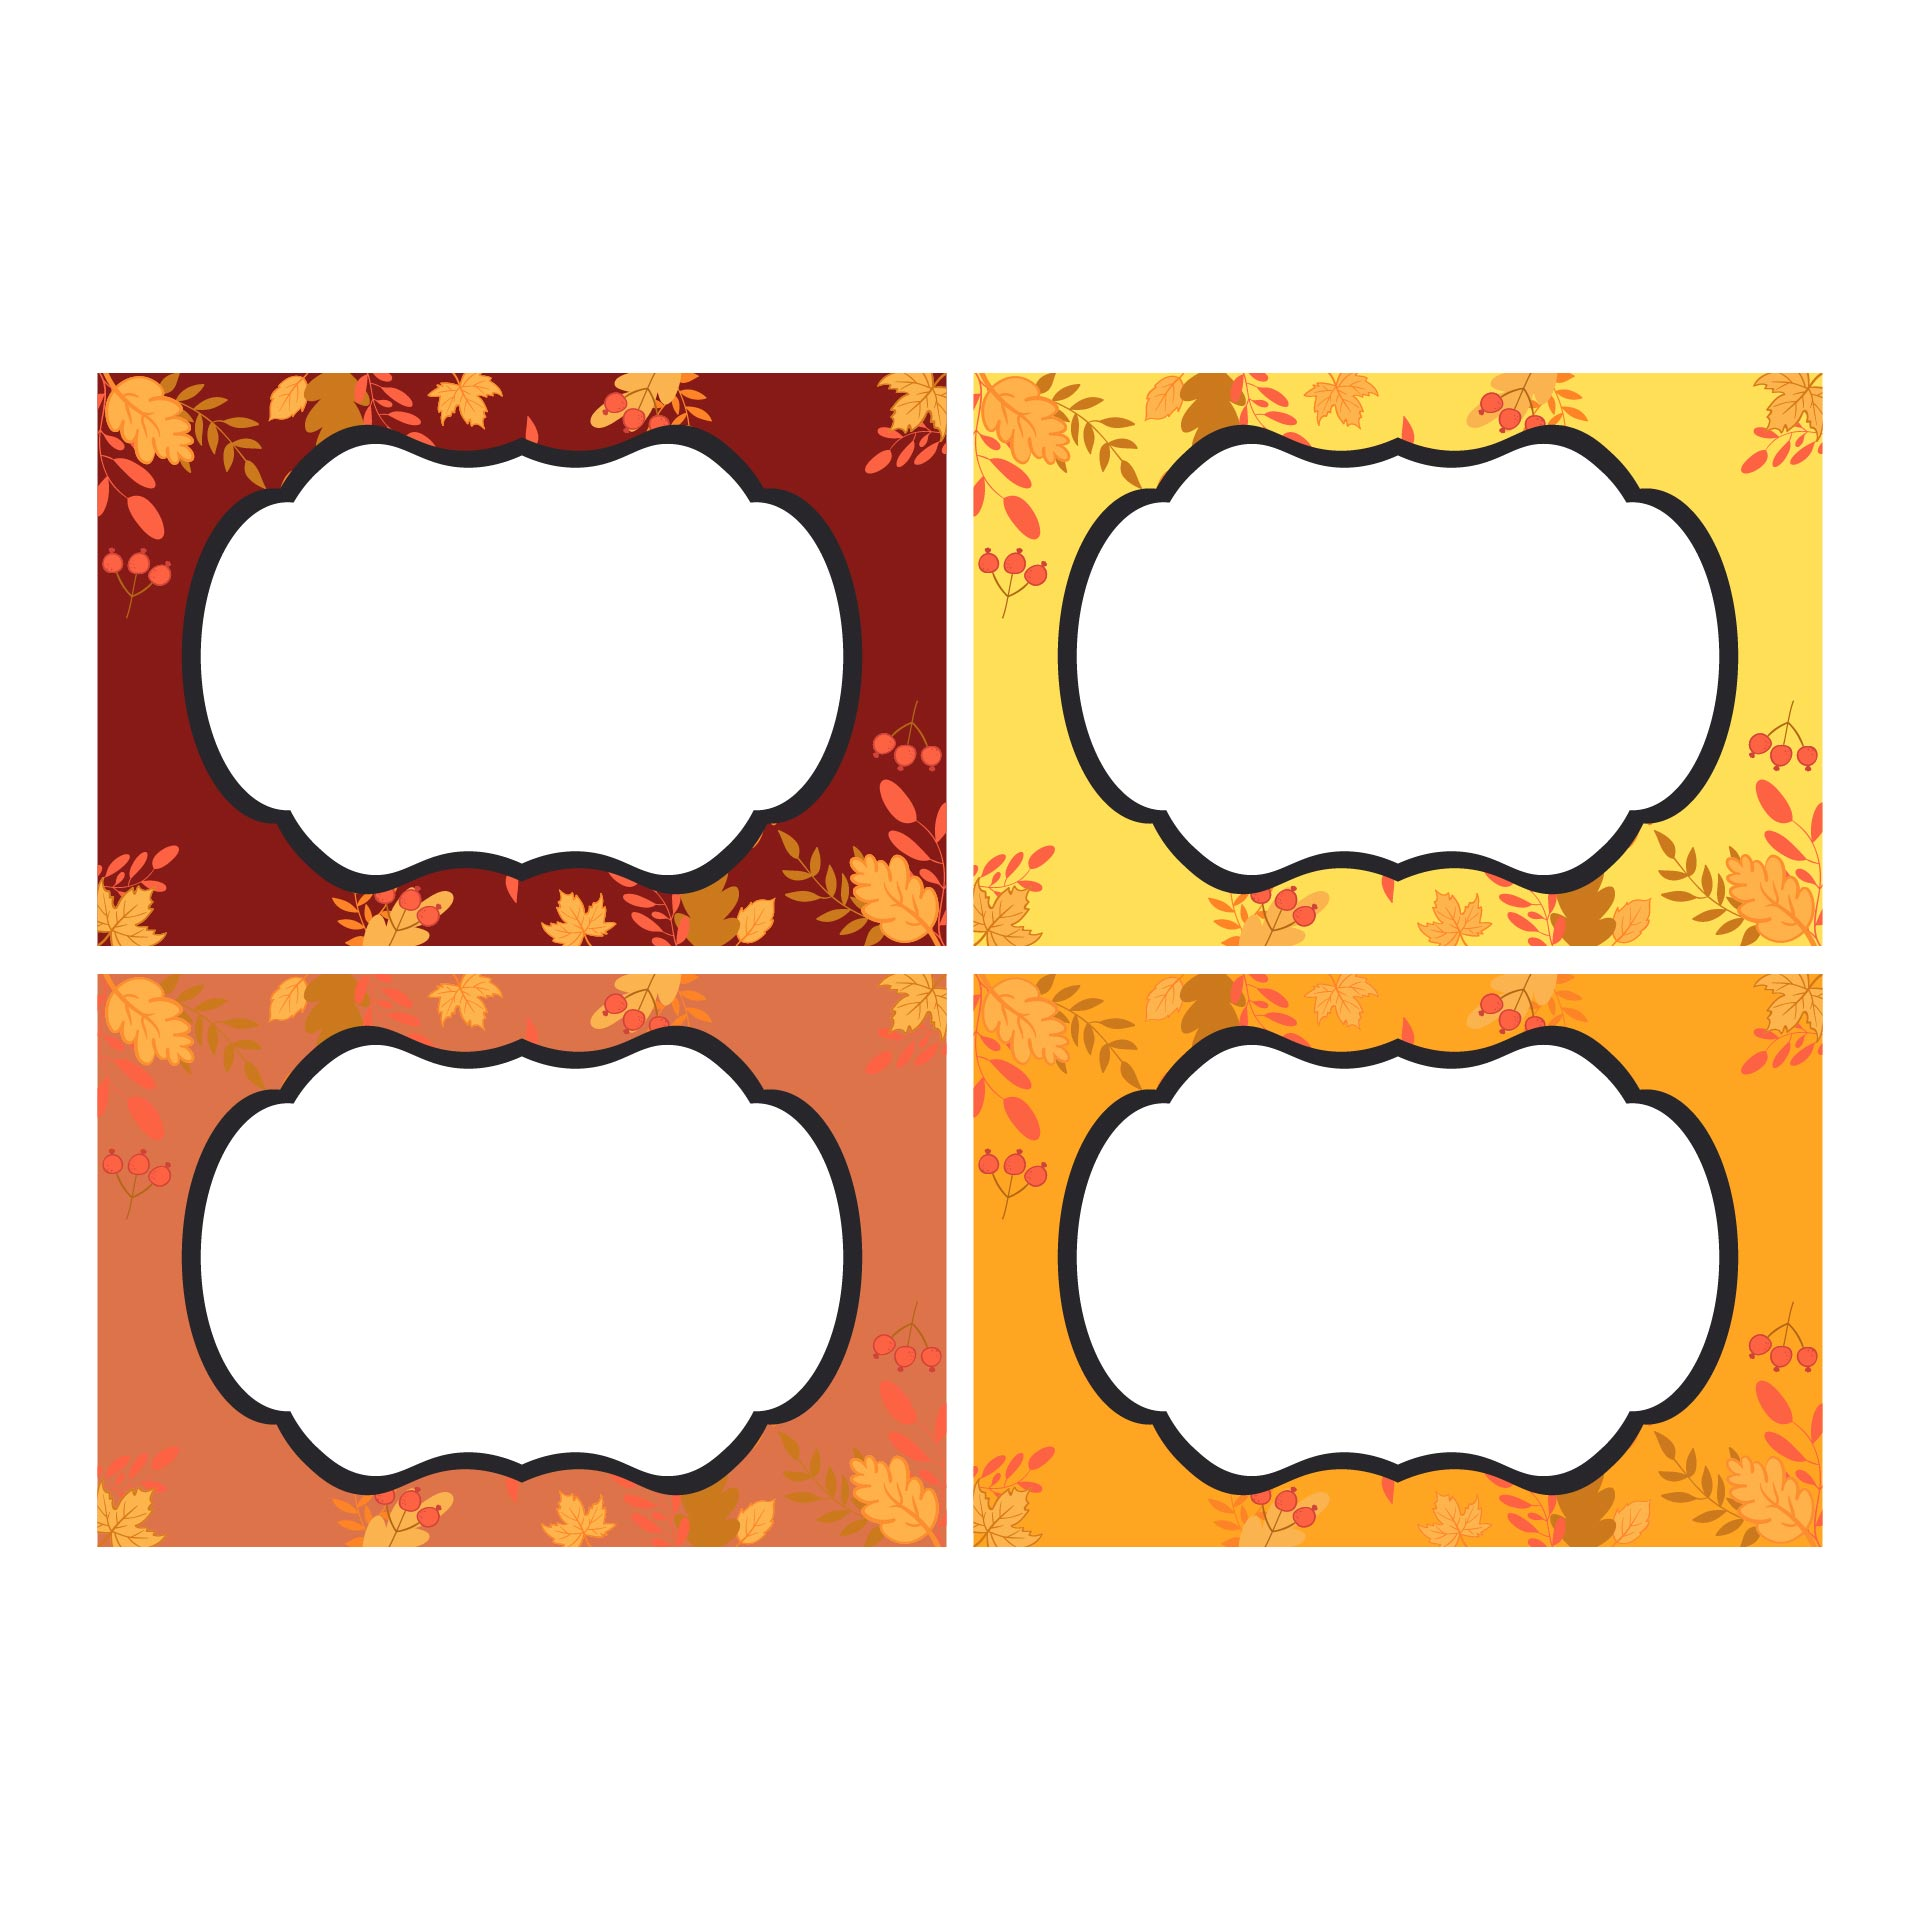 7 Images of Printable Blank Templates For Thanksgiving